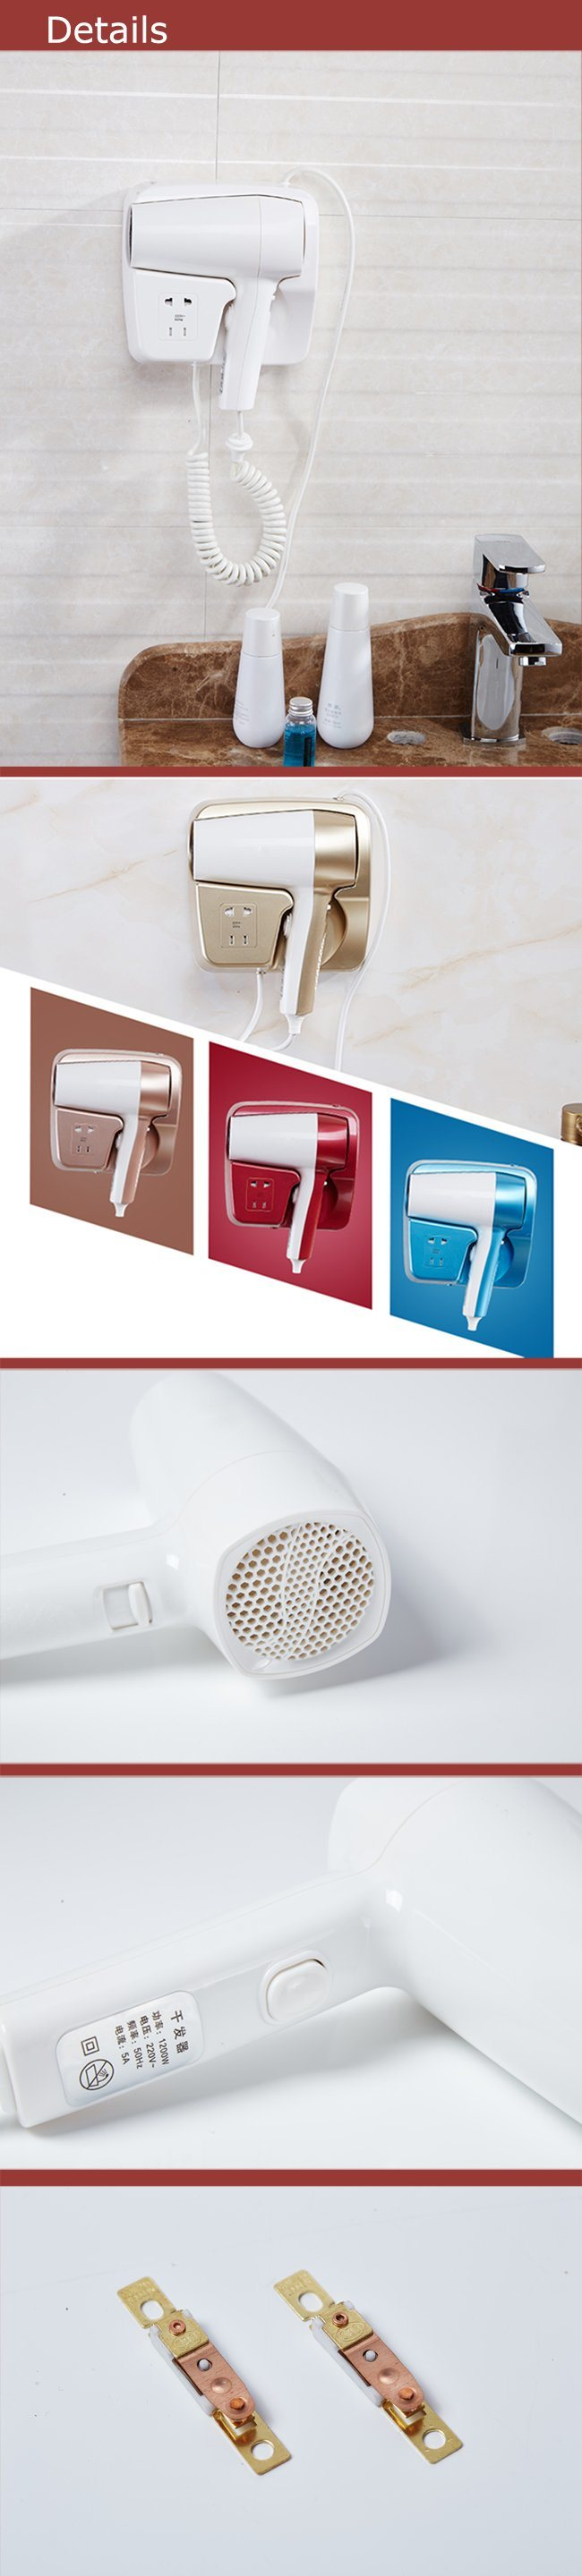 Top Quality White Hang up Hair Dryer with Socket